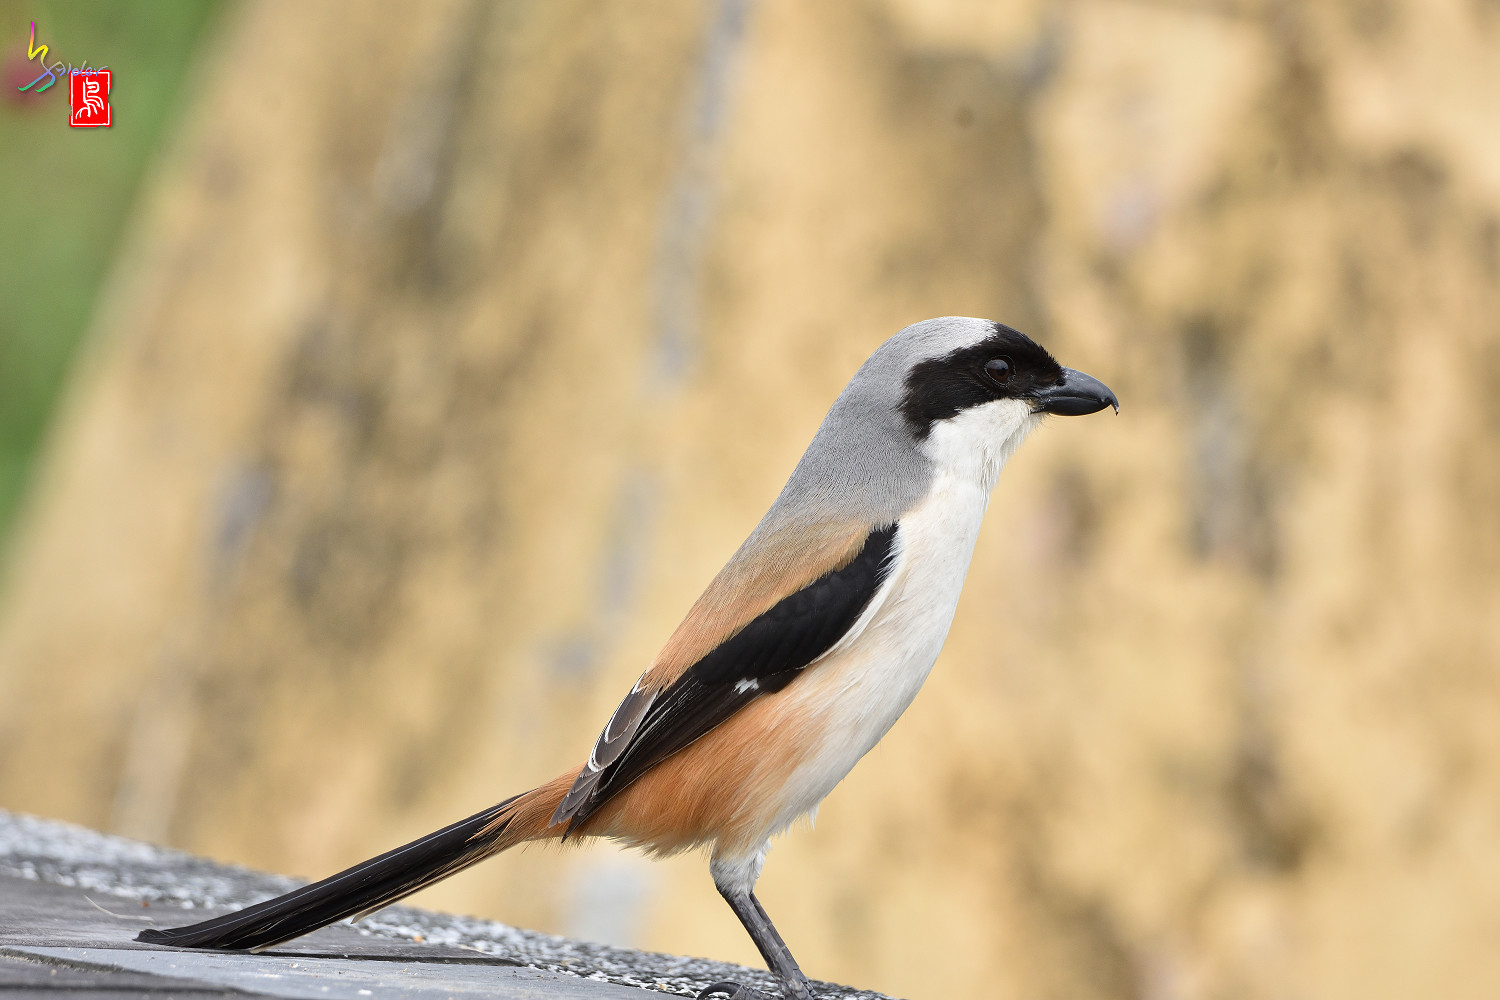 Long-tailed_Shrike_5583